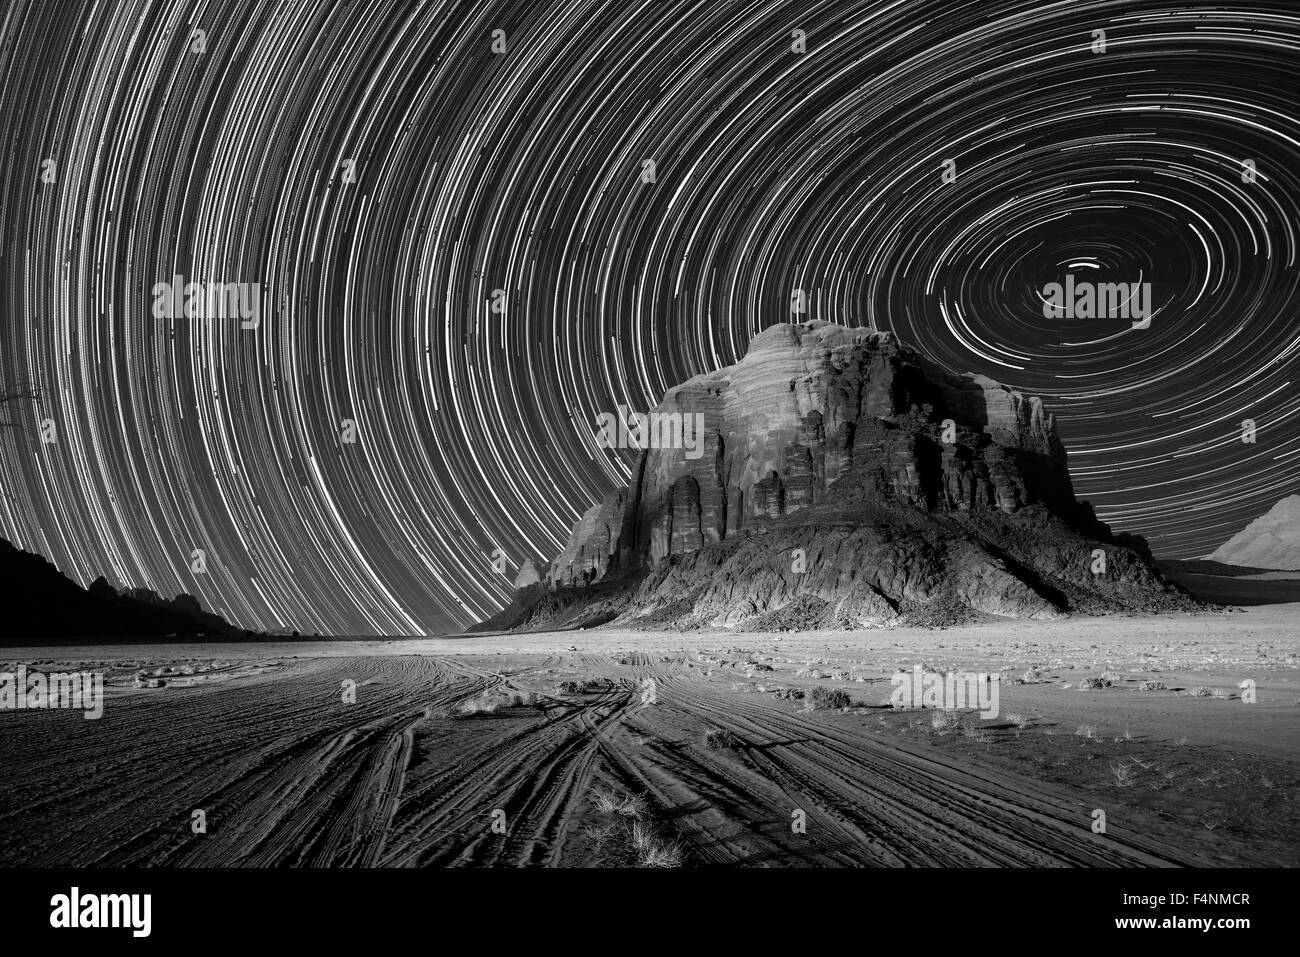 Desert scene with star trails and sand stone mountain - Stock Image